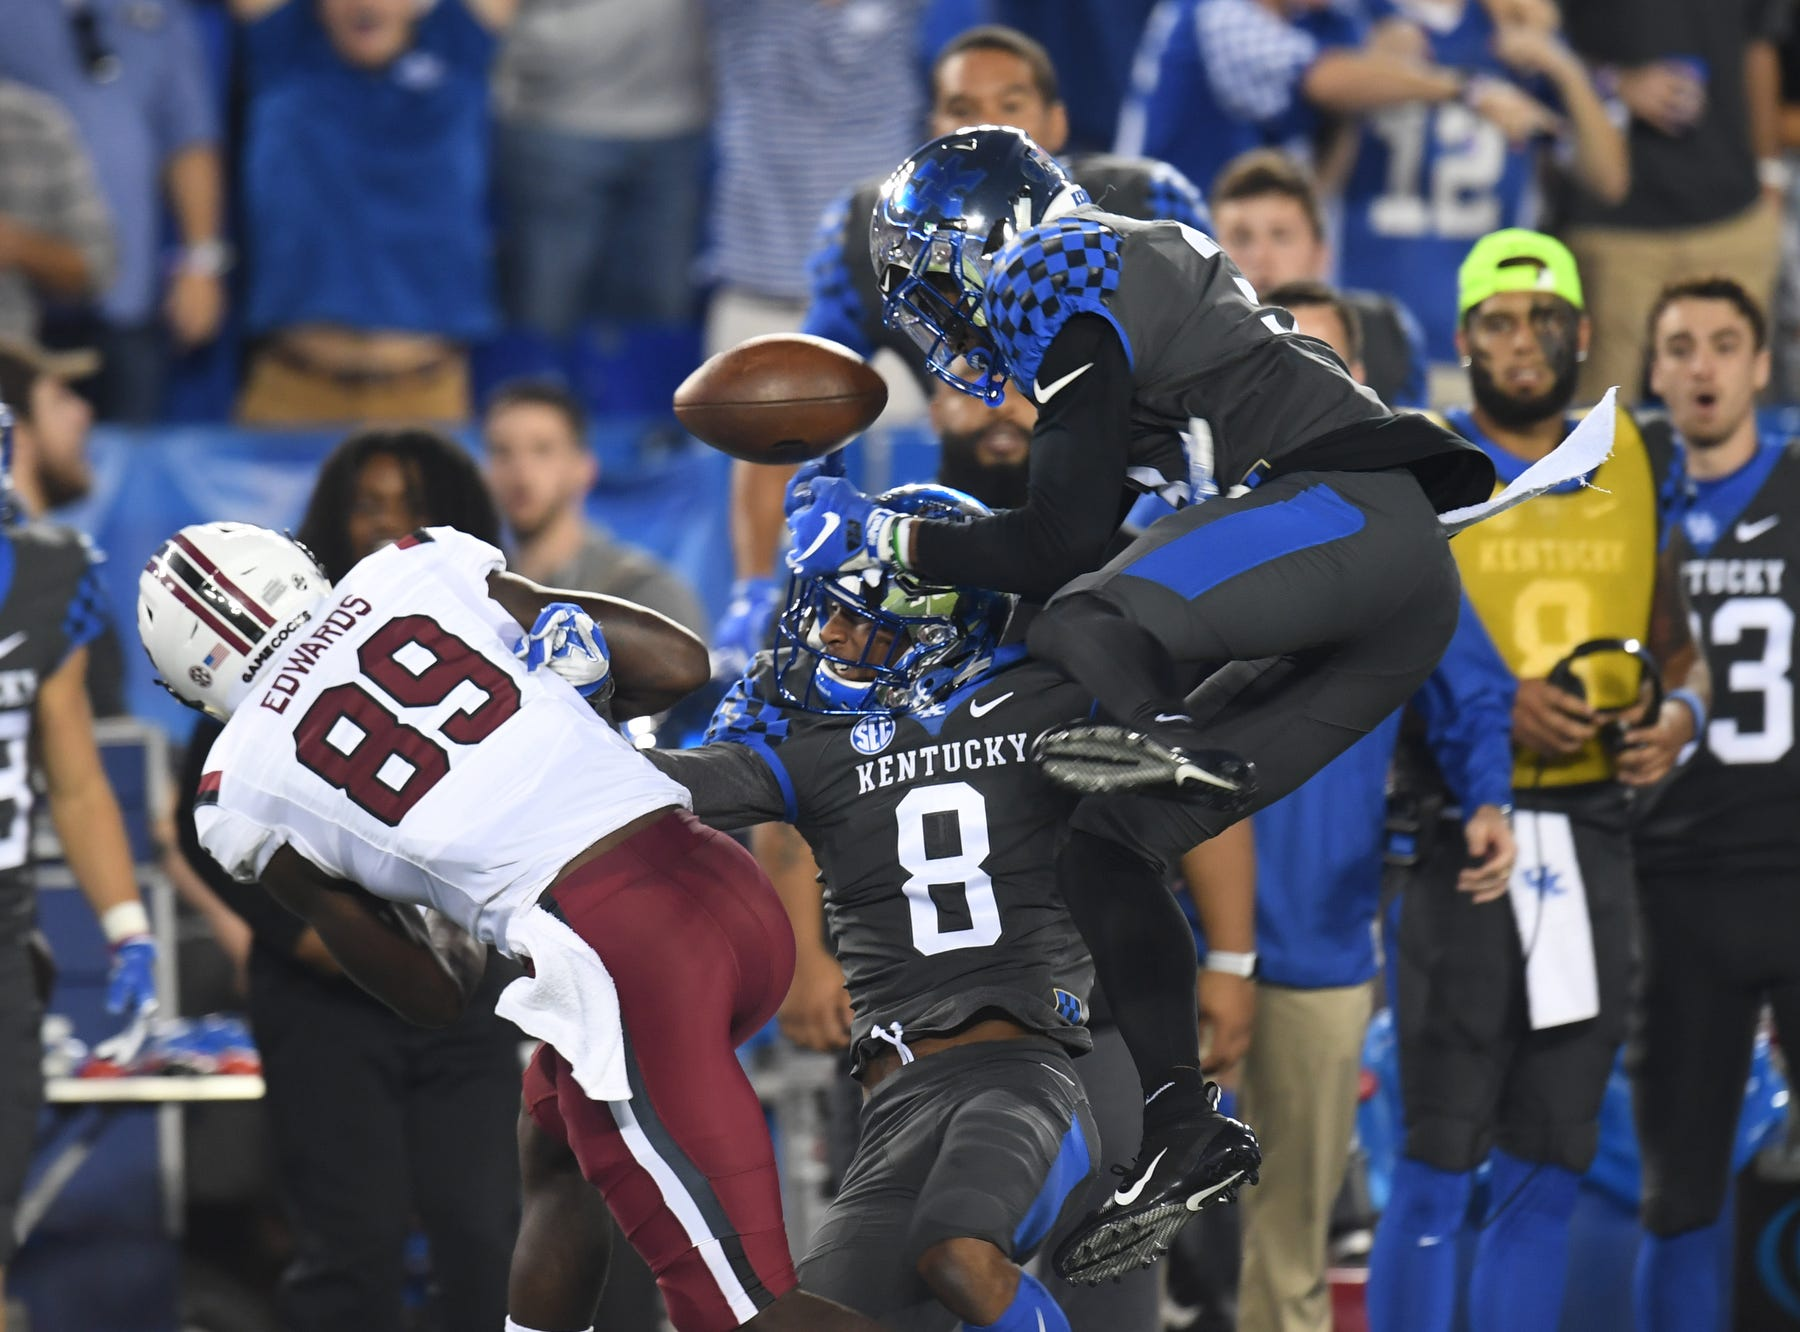 UK defenders break up a pass during the University of Kentucky football game against South Carolina at Kroger Field in Lexington, Kentucky on Saturday, September 29, 2018.